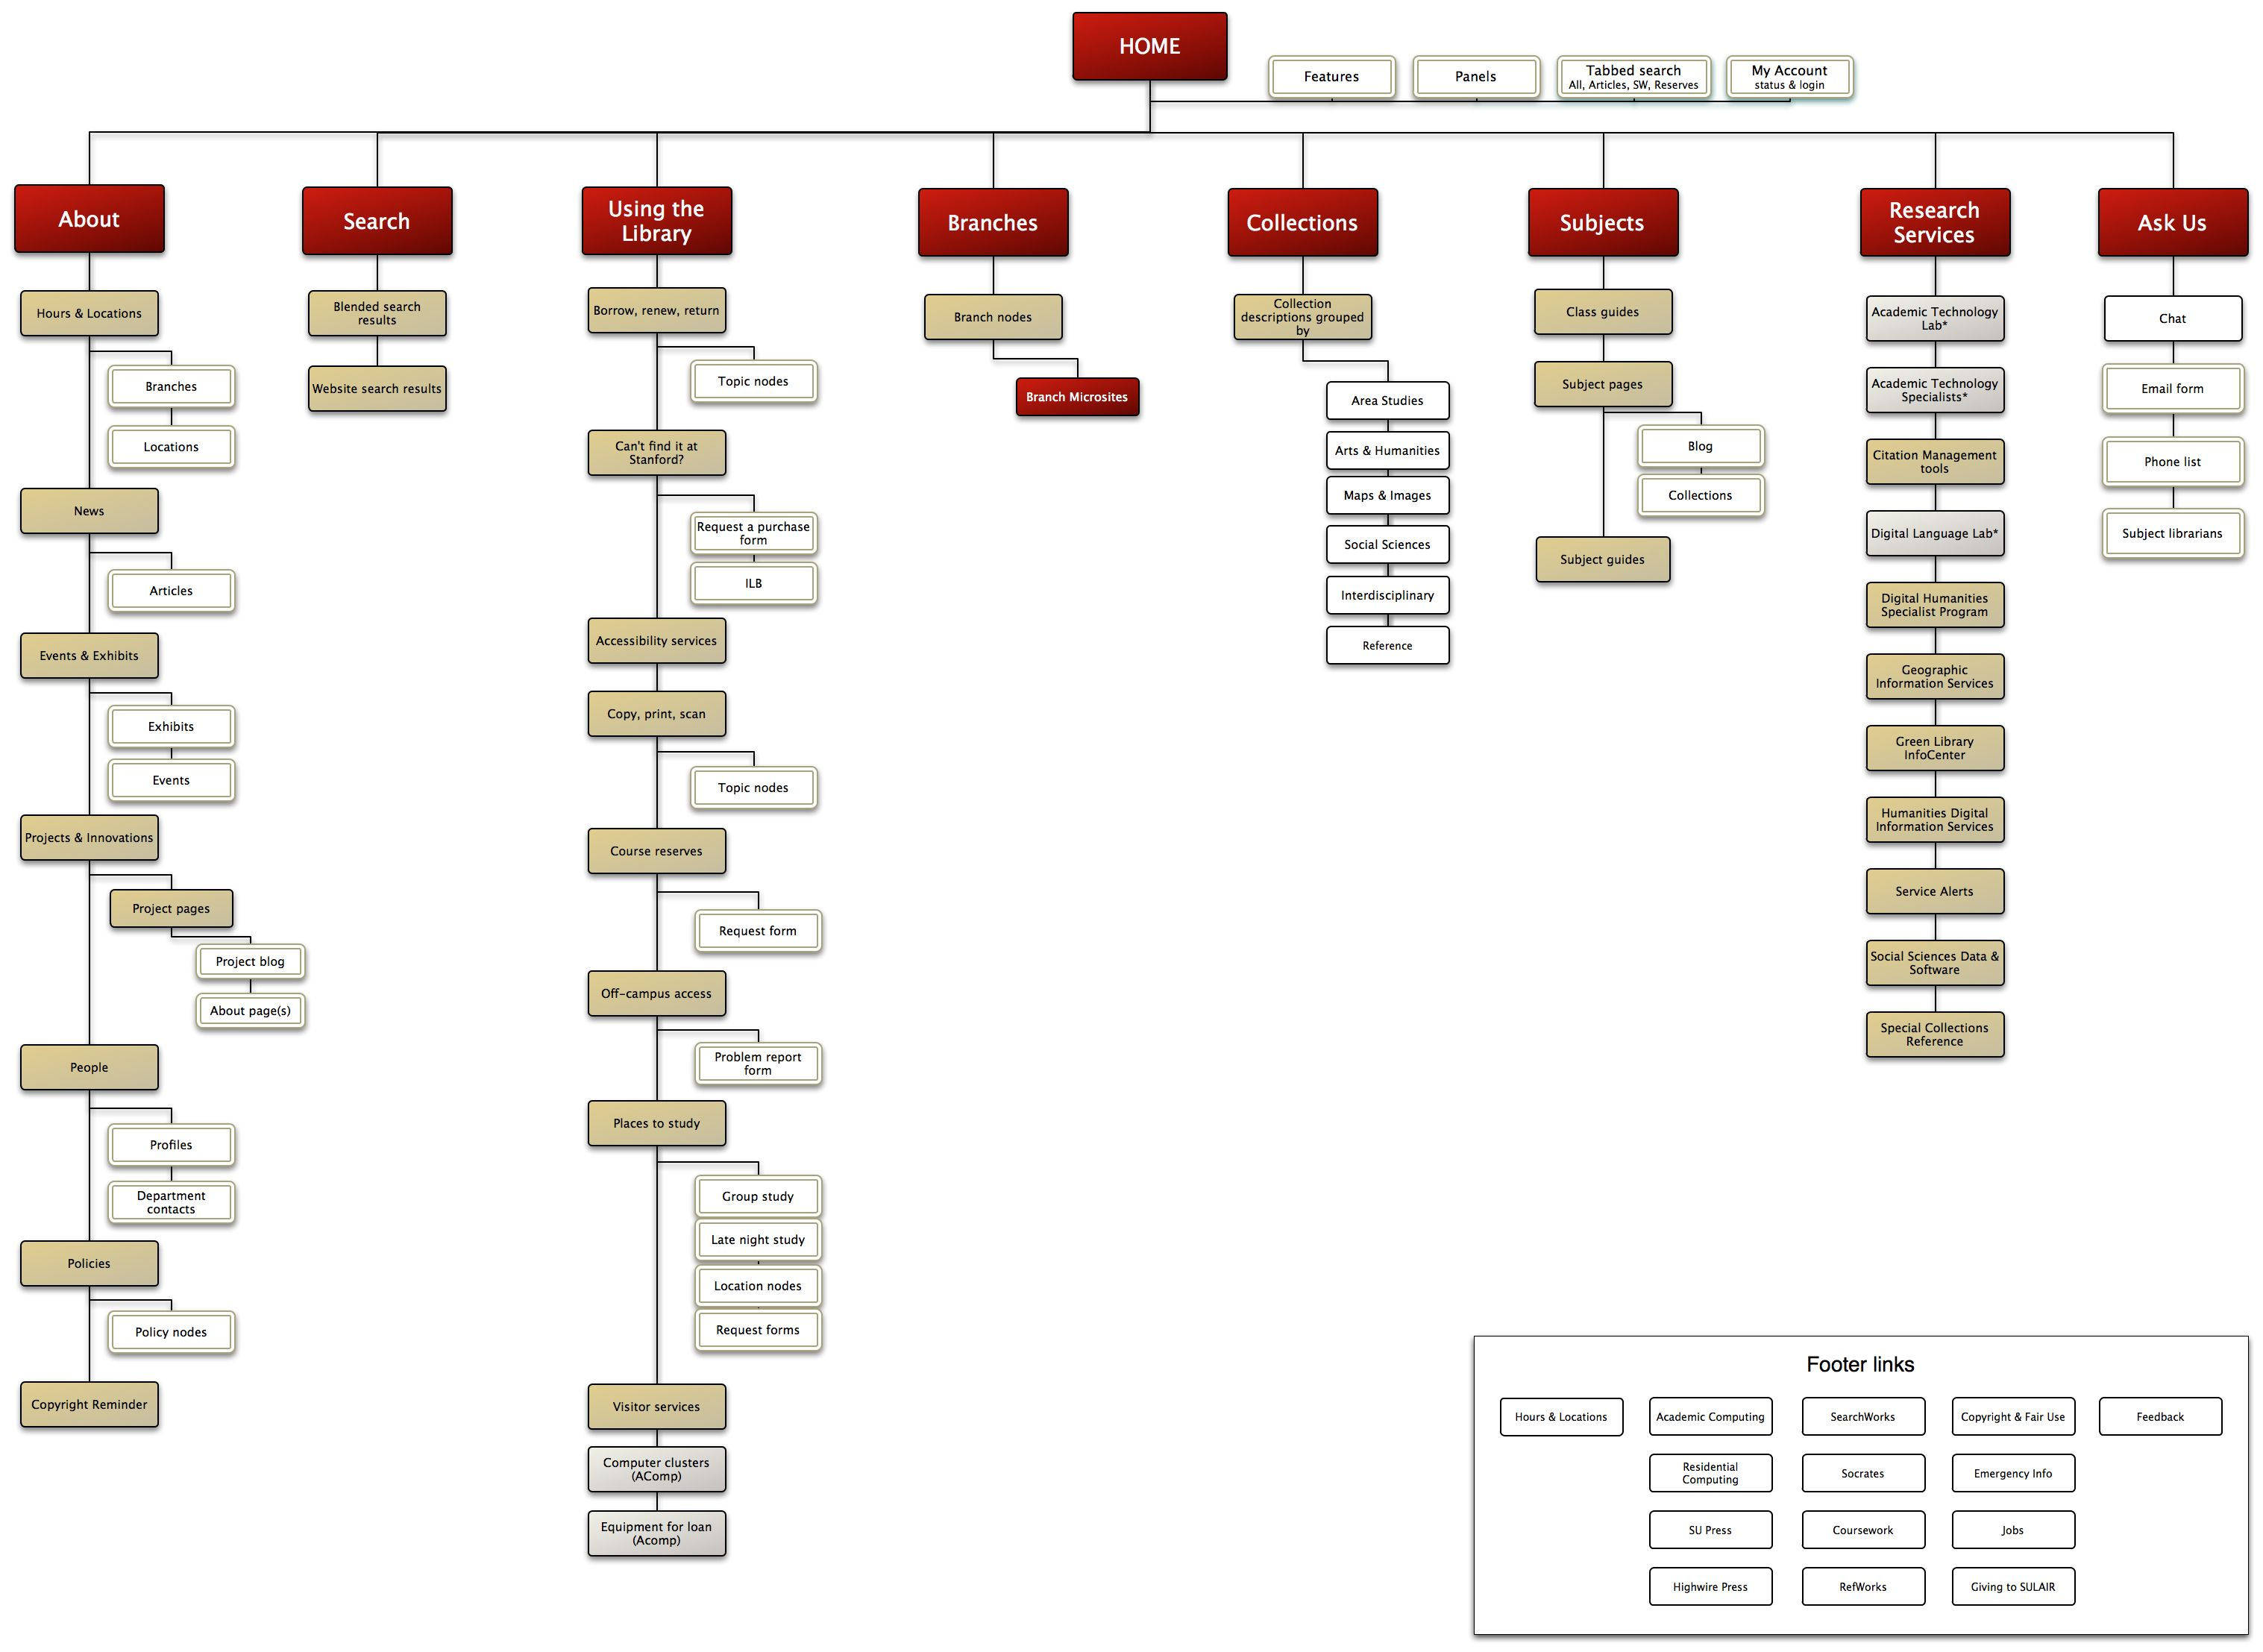 17 Best images about HCI - Information Architecture on Pinterest ...